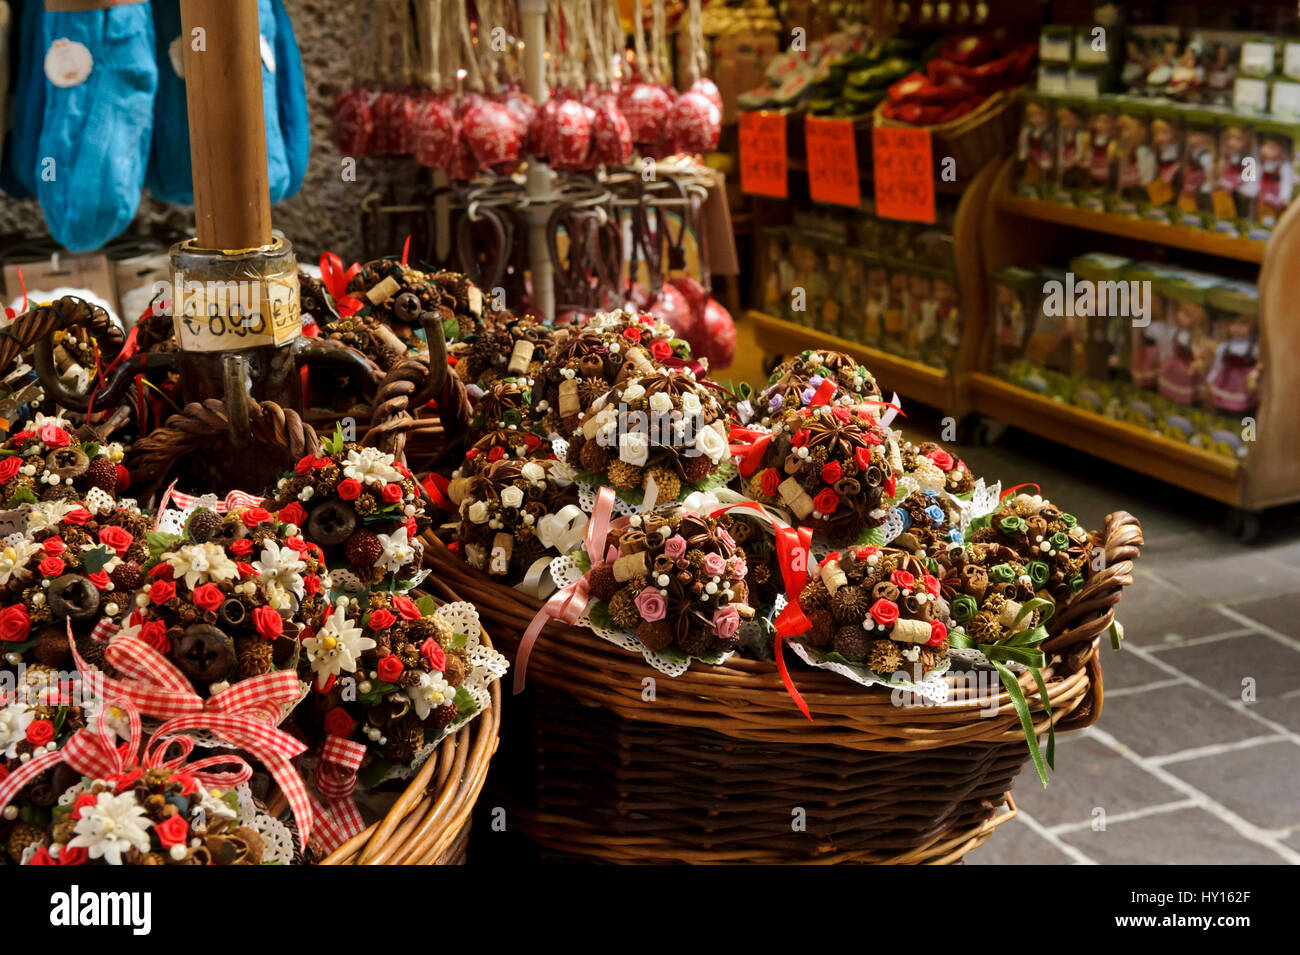 Baskets With Bouquets Stock Photos & Baskets With Bouquets Stock ...